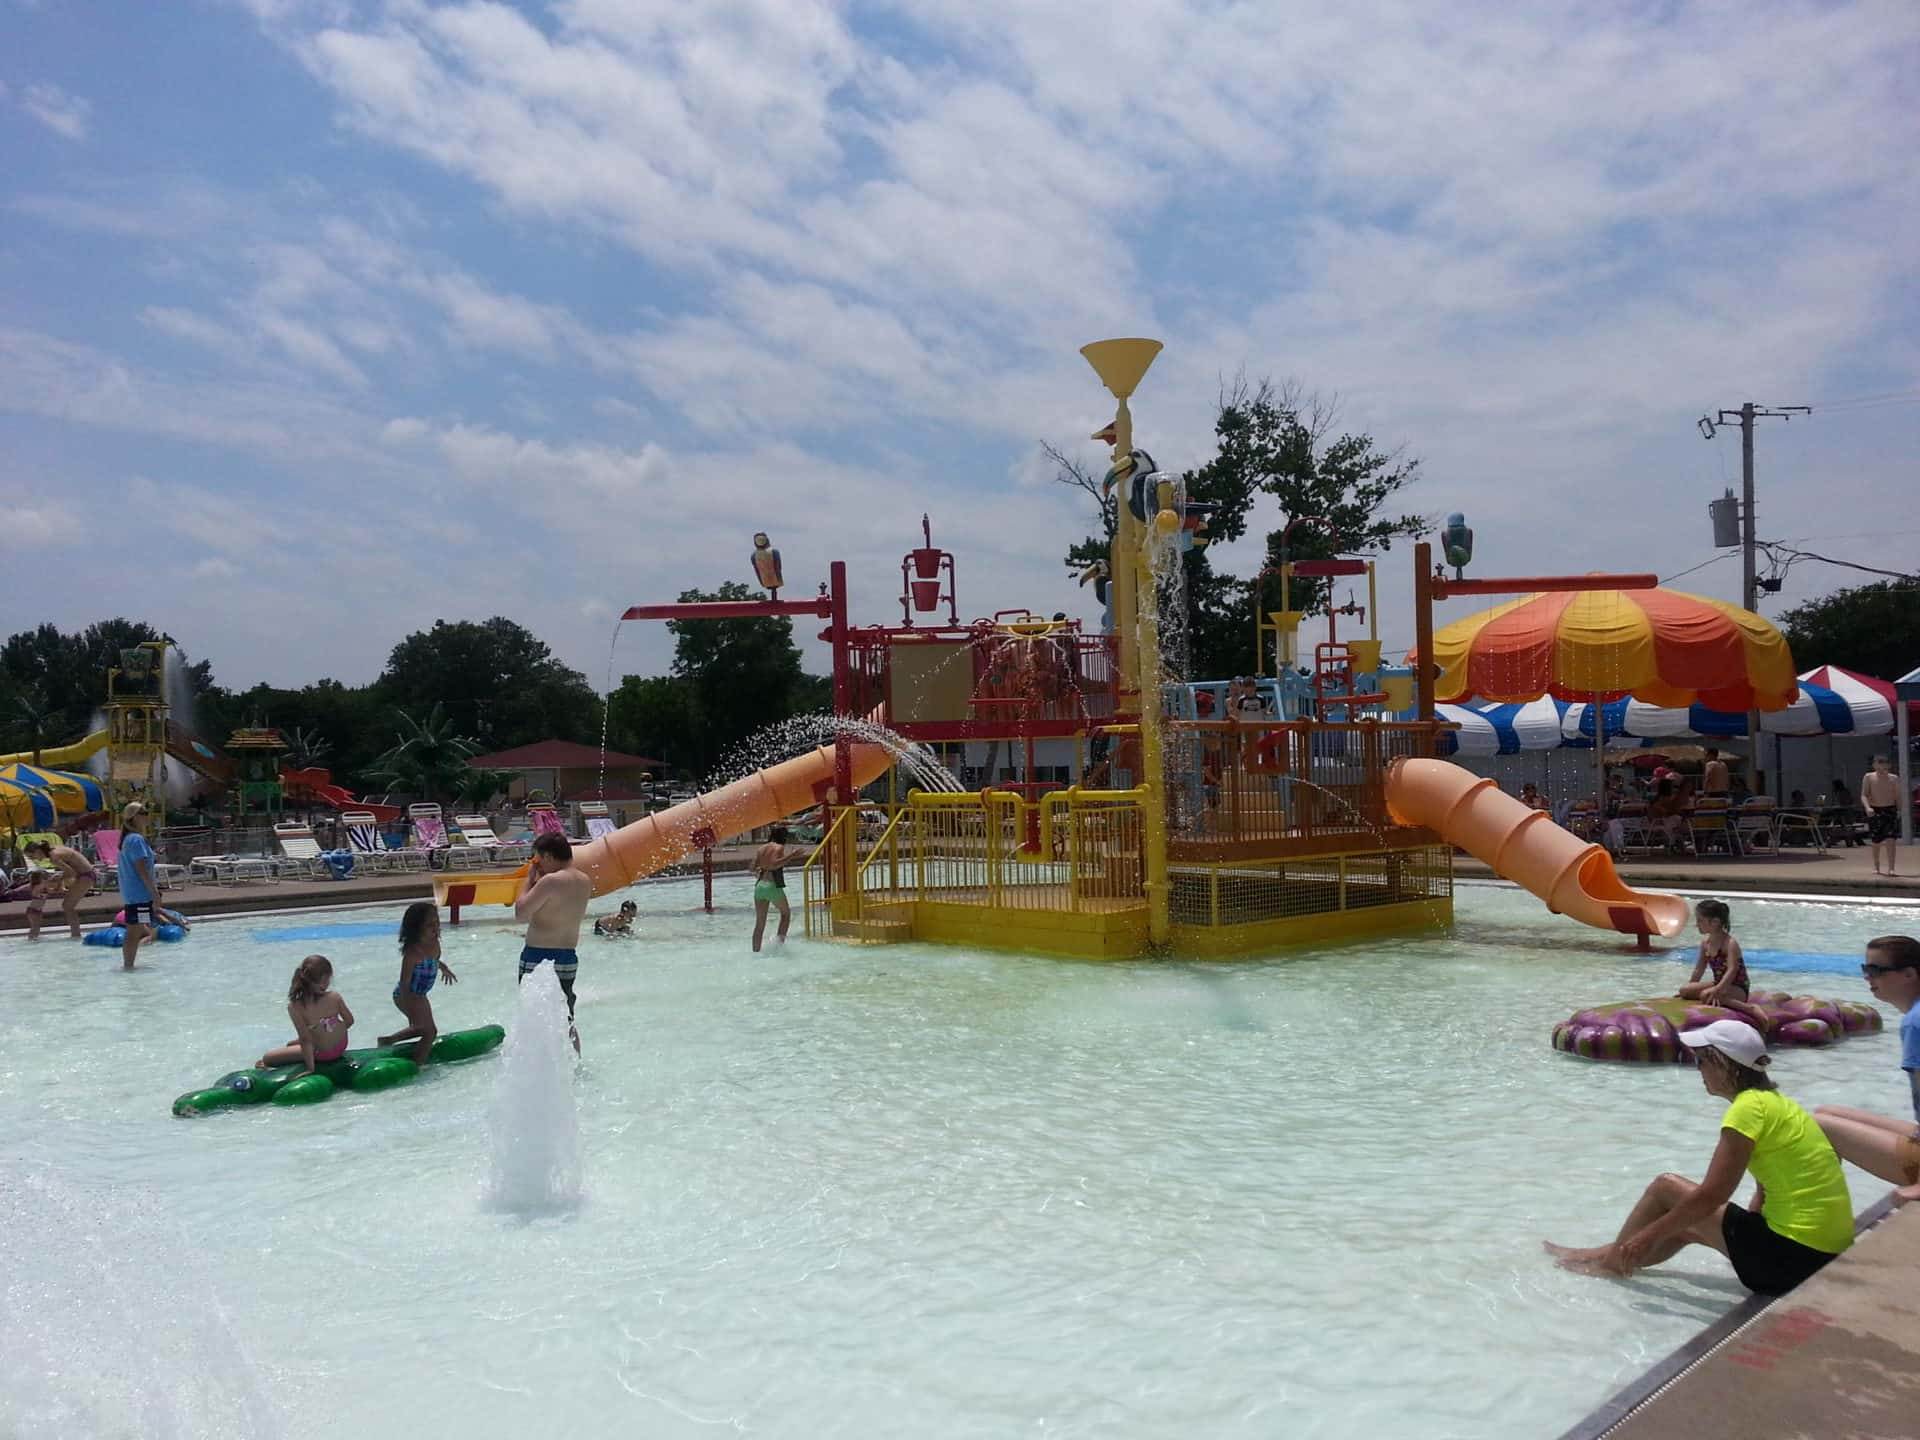 Beech Bend Park and Splash Lagoon - Slides